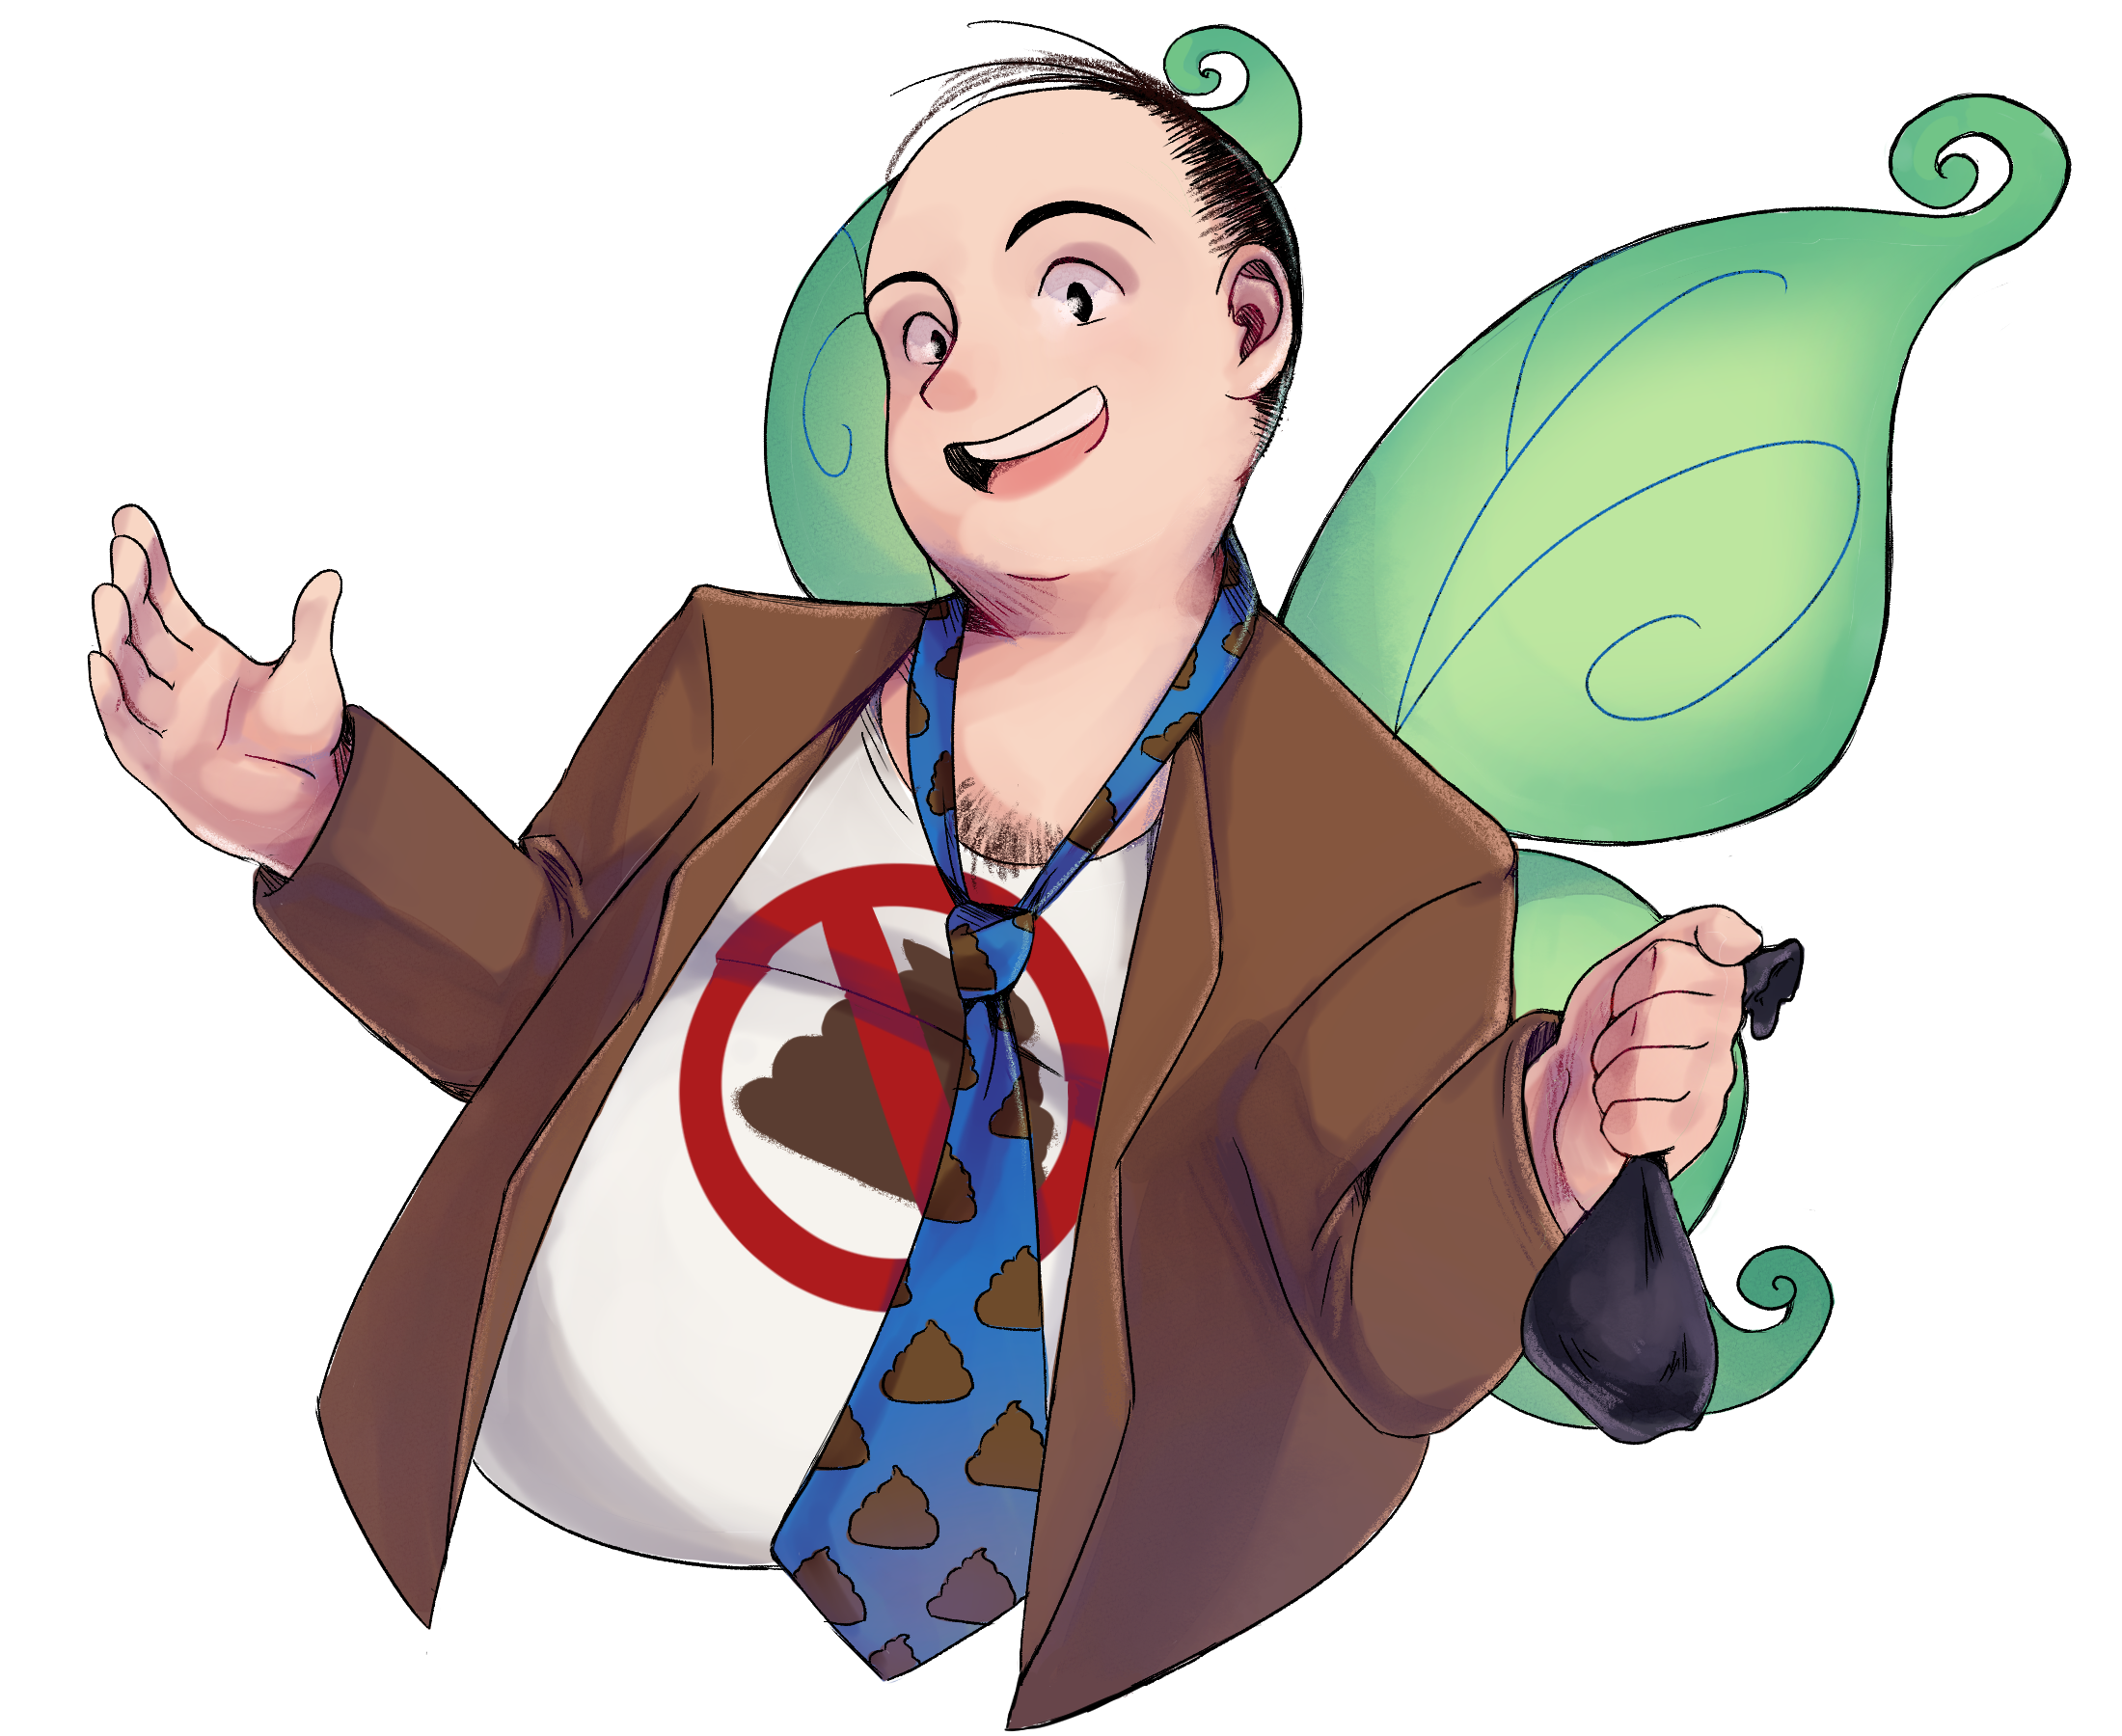 Professor Poop Fairy holding a poop bag with arms out and smiling. His wings are green, and he is wearing a brown coat over a white tank top with a crossed out poop symbol, all tied together with a blue poop emoji tie.